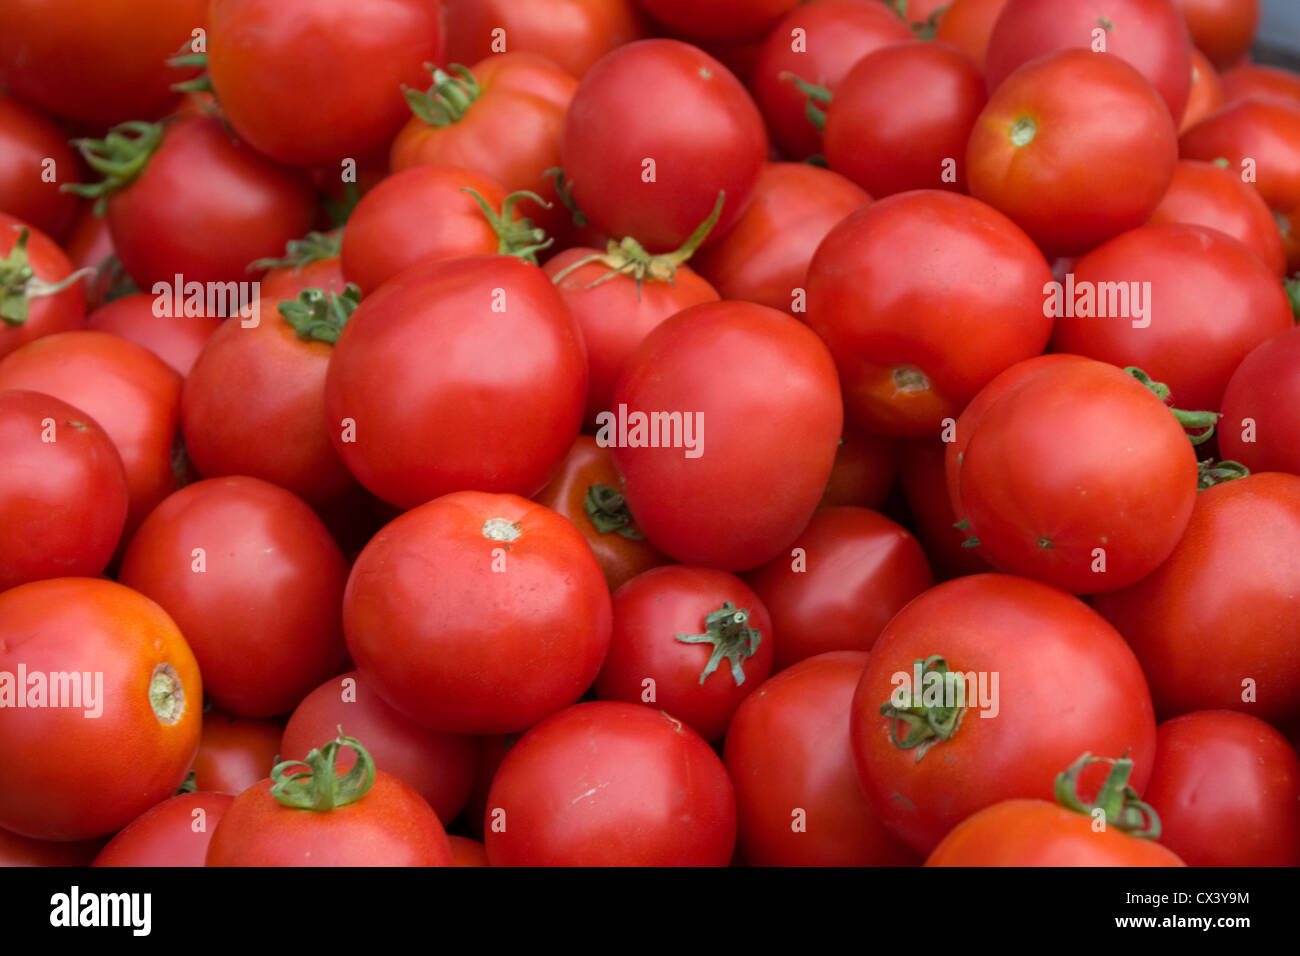 Fresh locally grown tomatoes available at the Monterey Farmers Market. Stock Photo